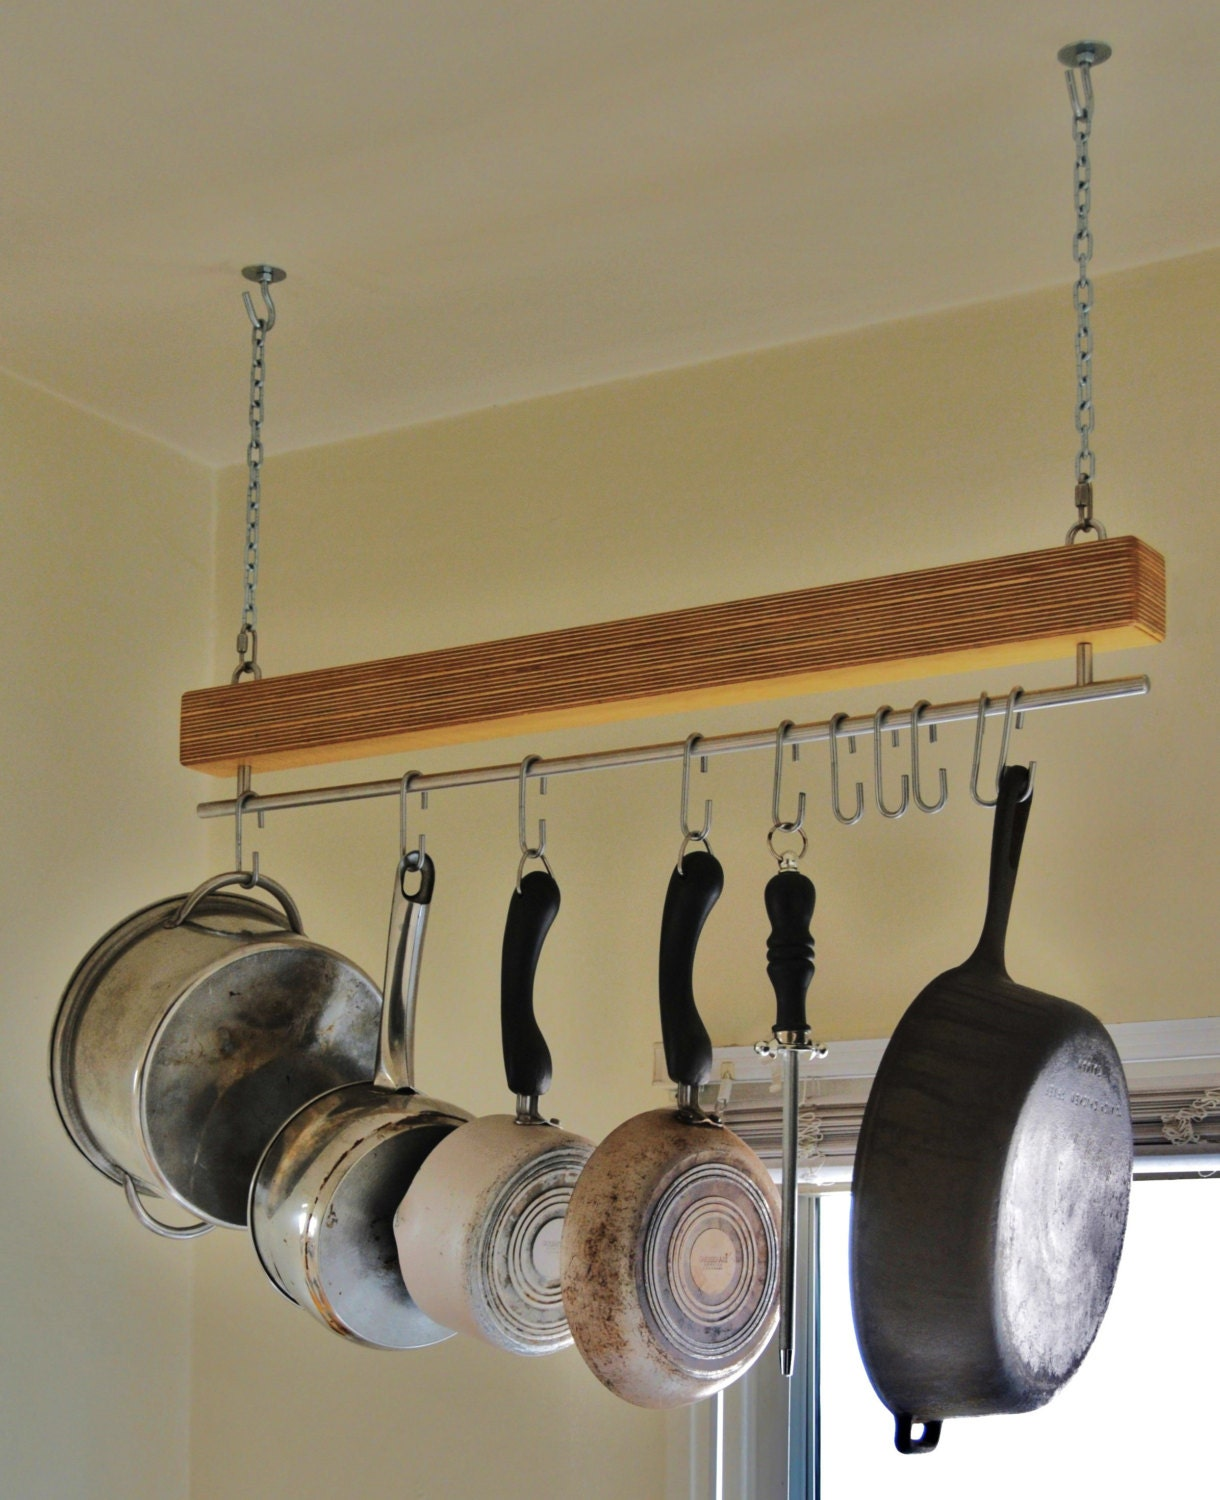 Handmade Baltic Birch Hanging Pot Rack